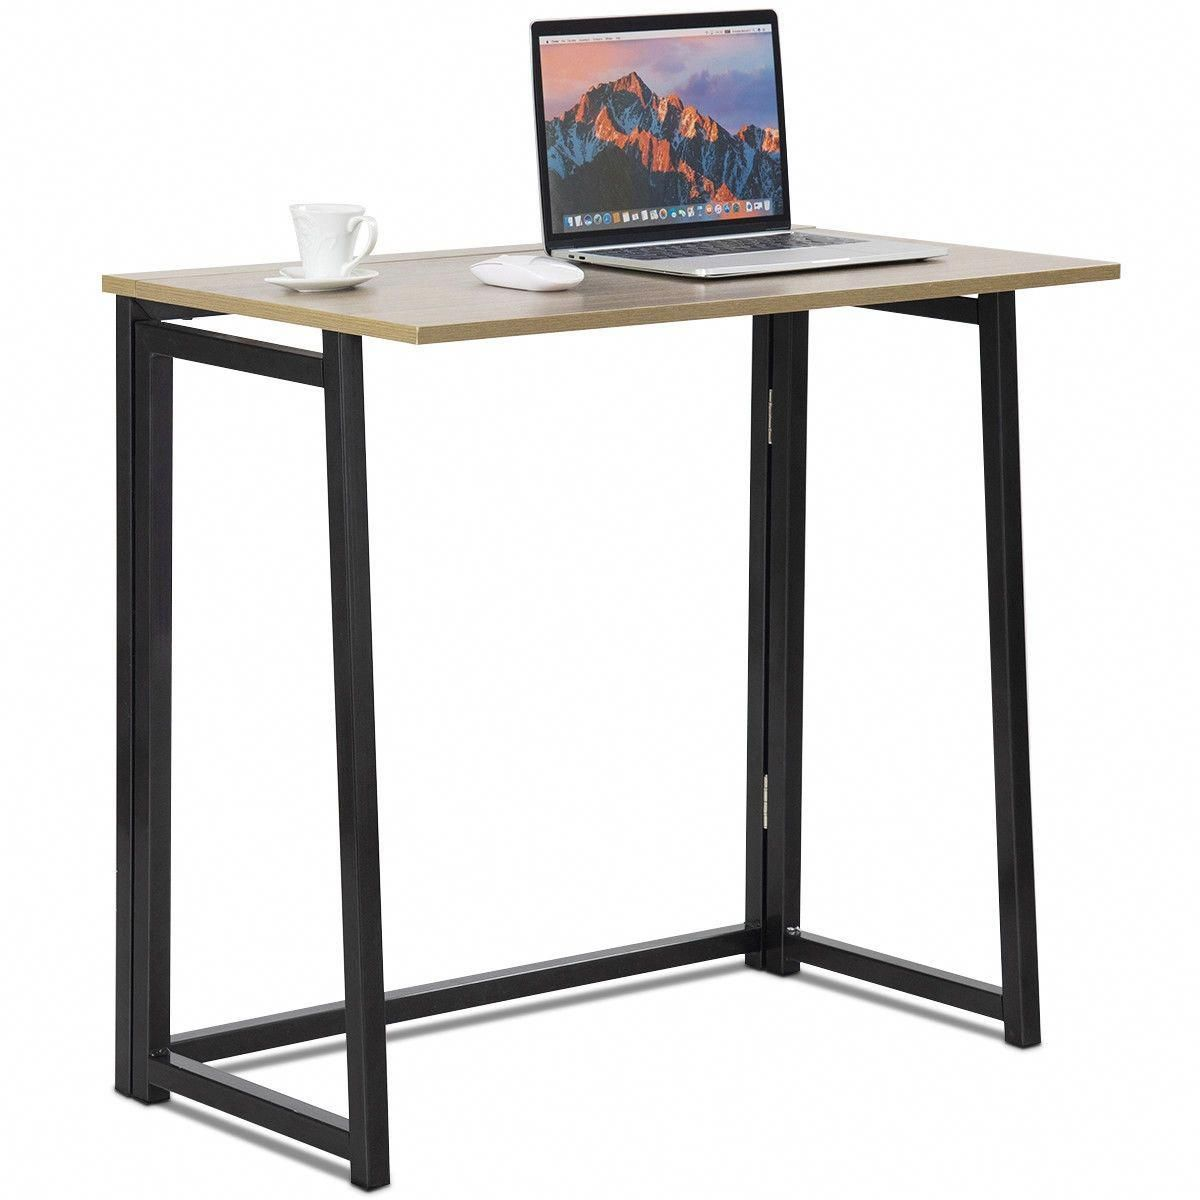 17 Superb Computer Desk Under 40 Furniturepalembang Computerdesk